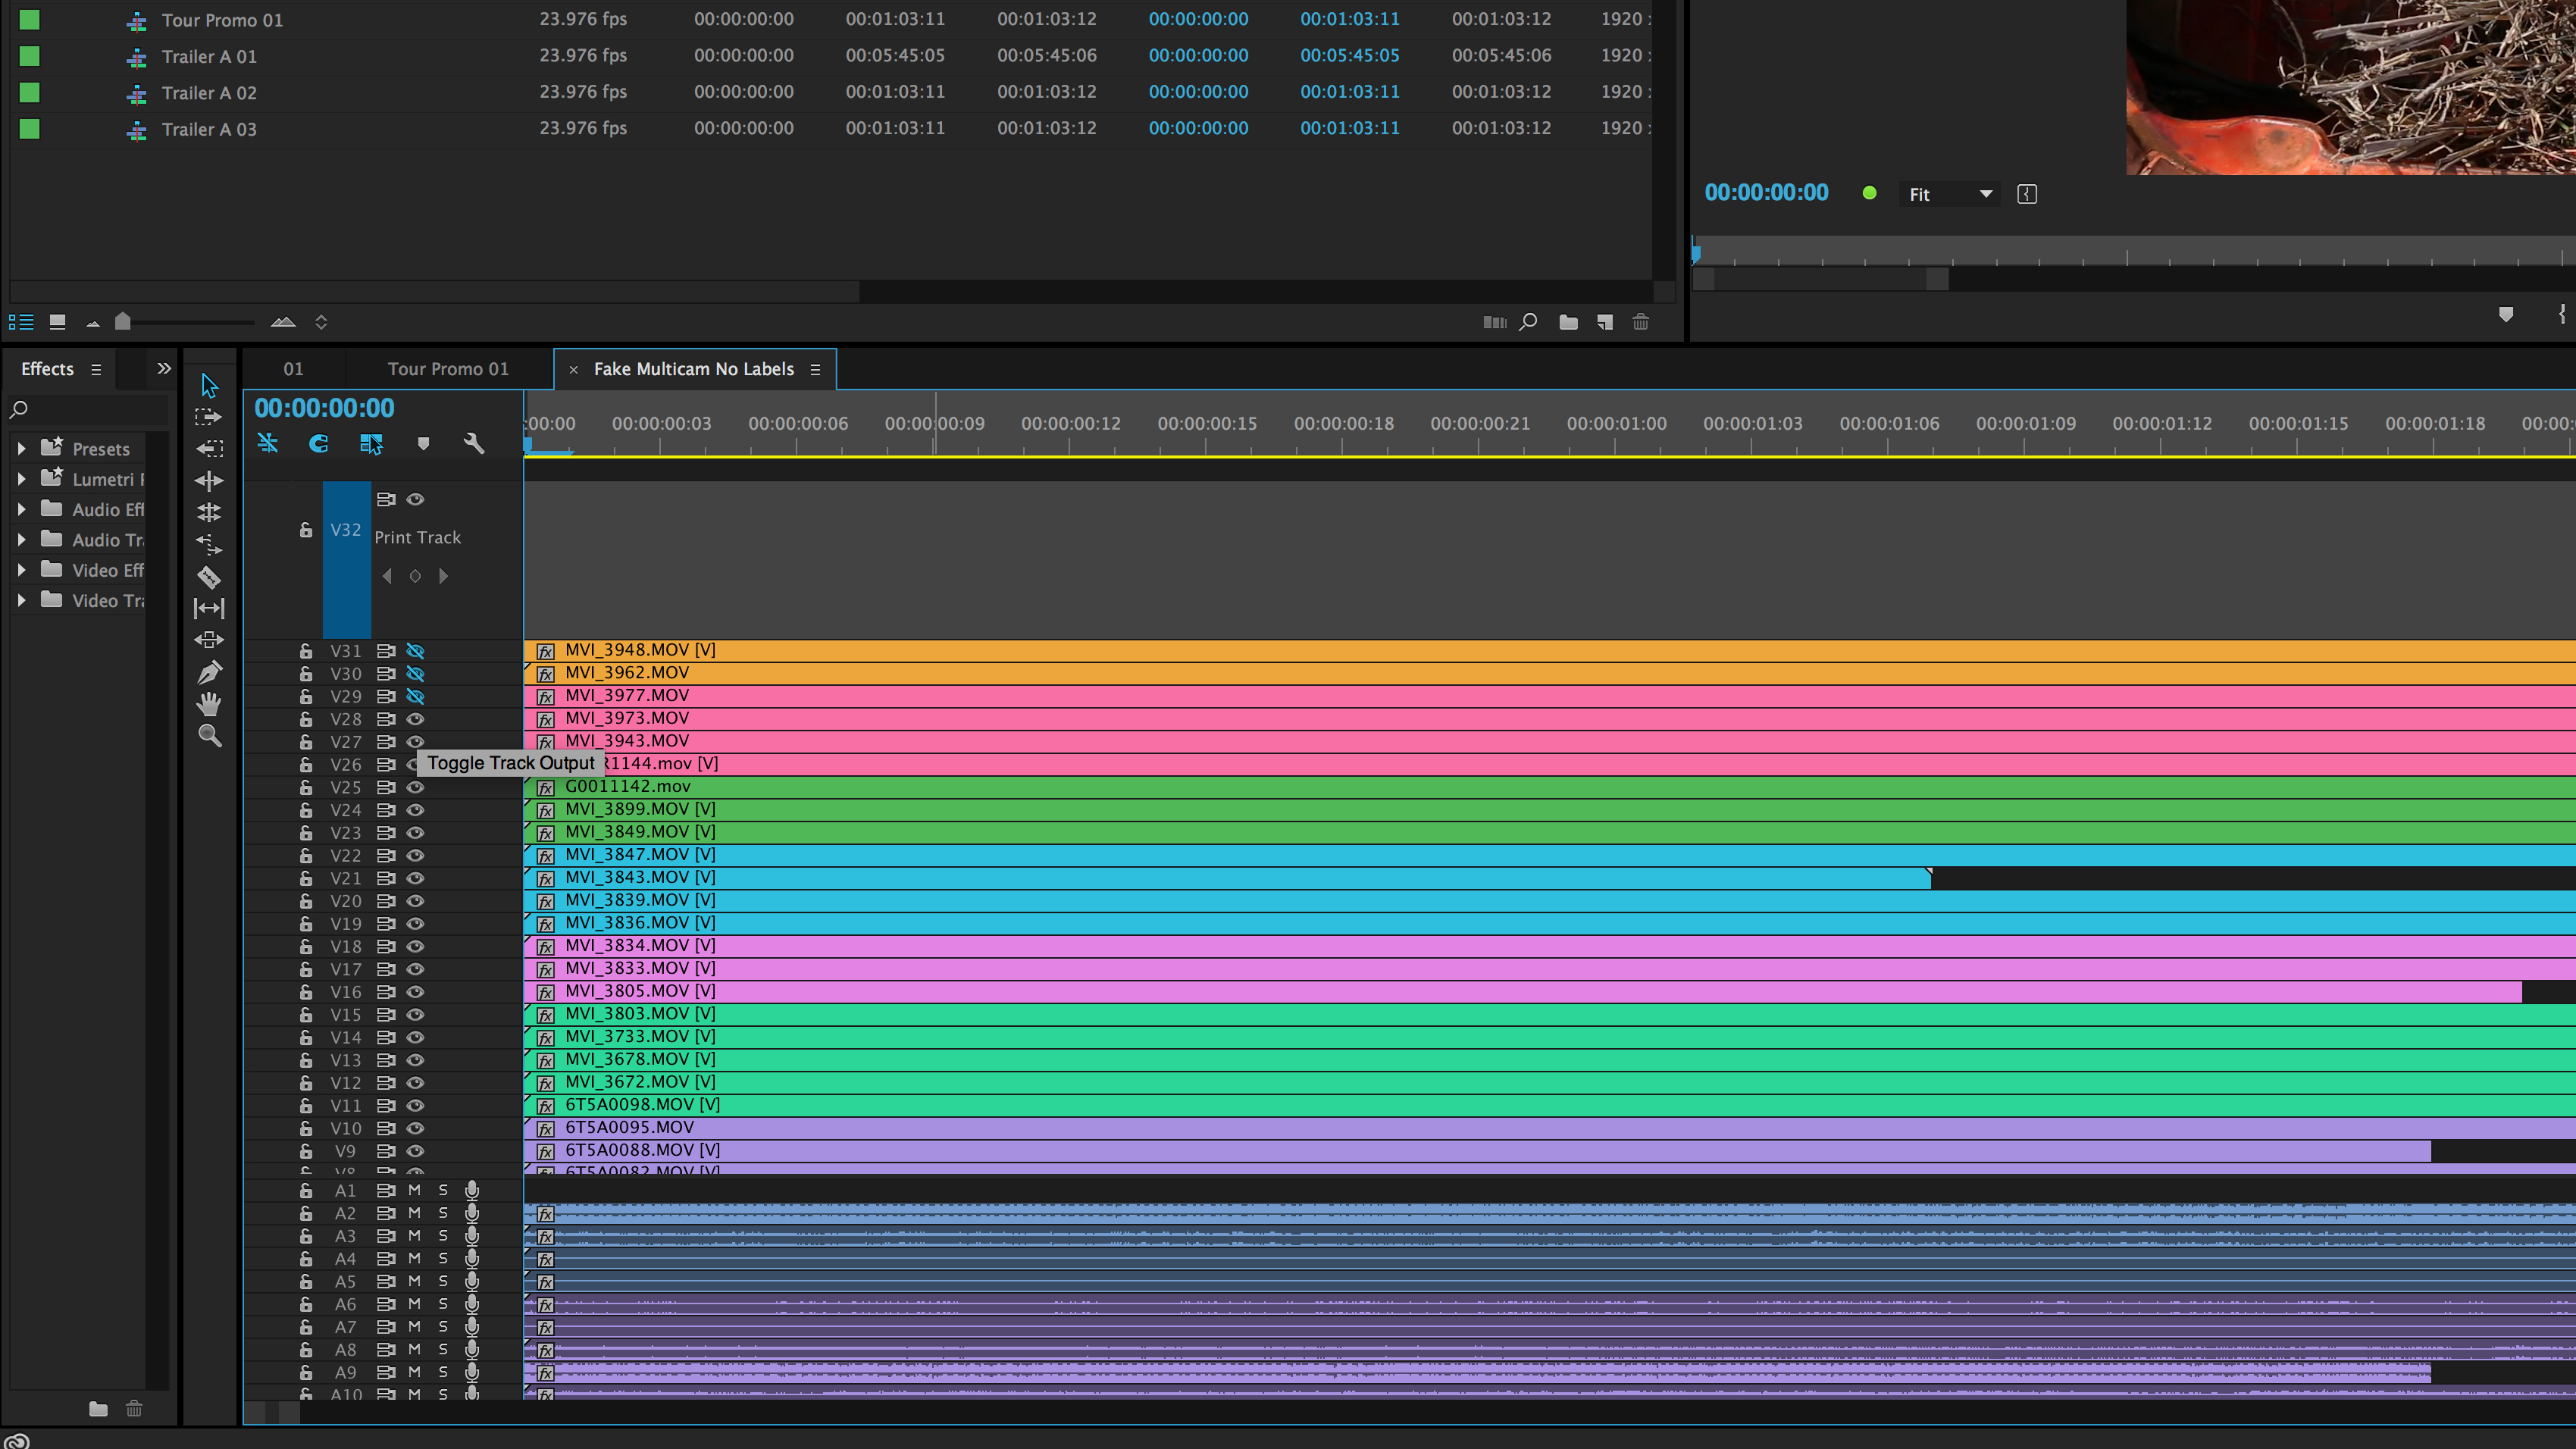 How to Edit a Session With Tons of Camera Angles: Toggle Track Output